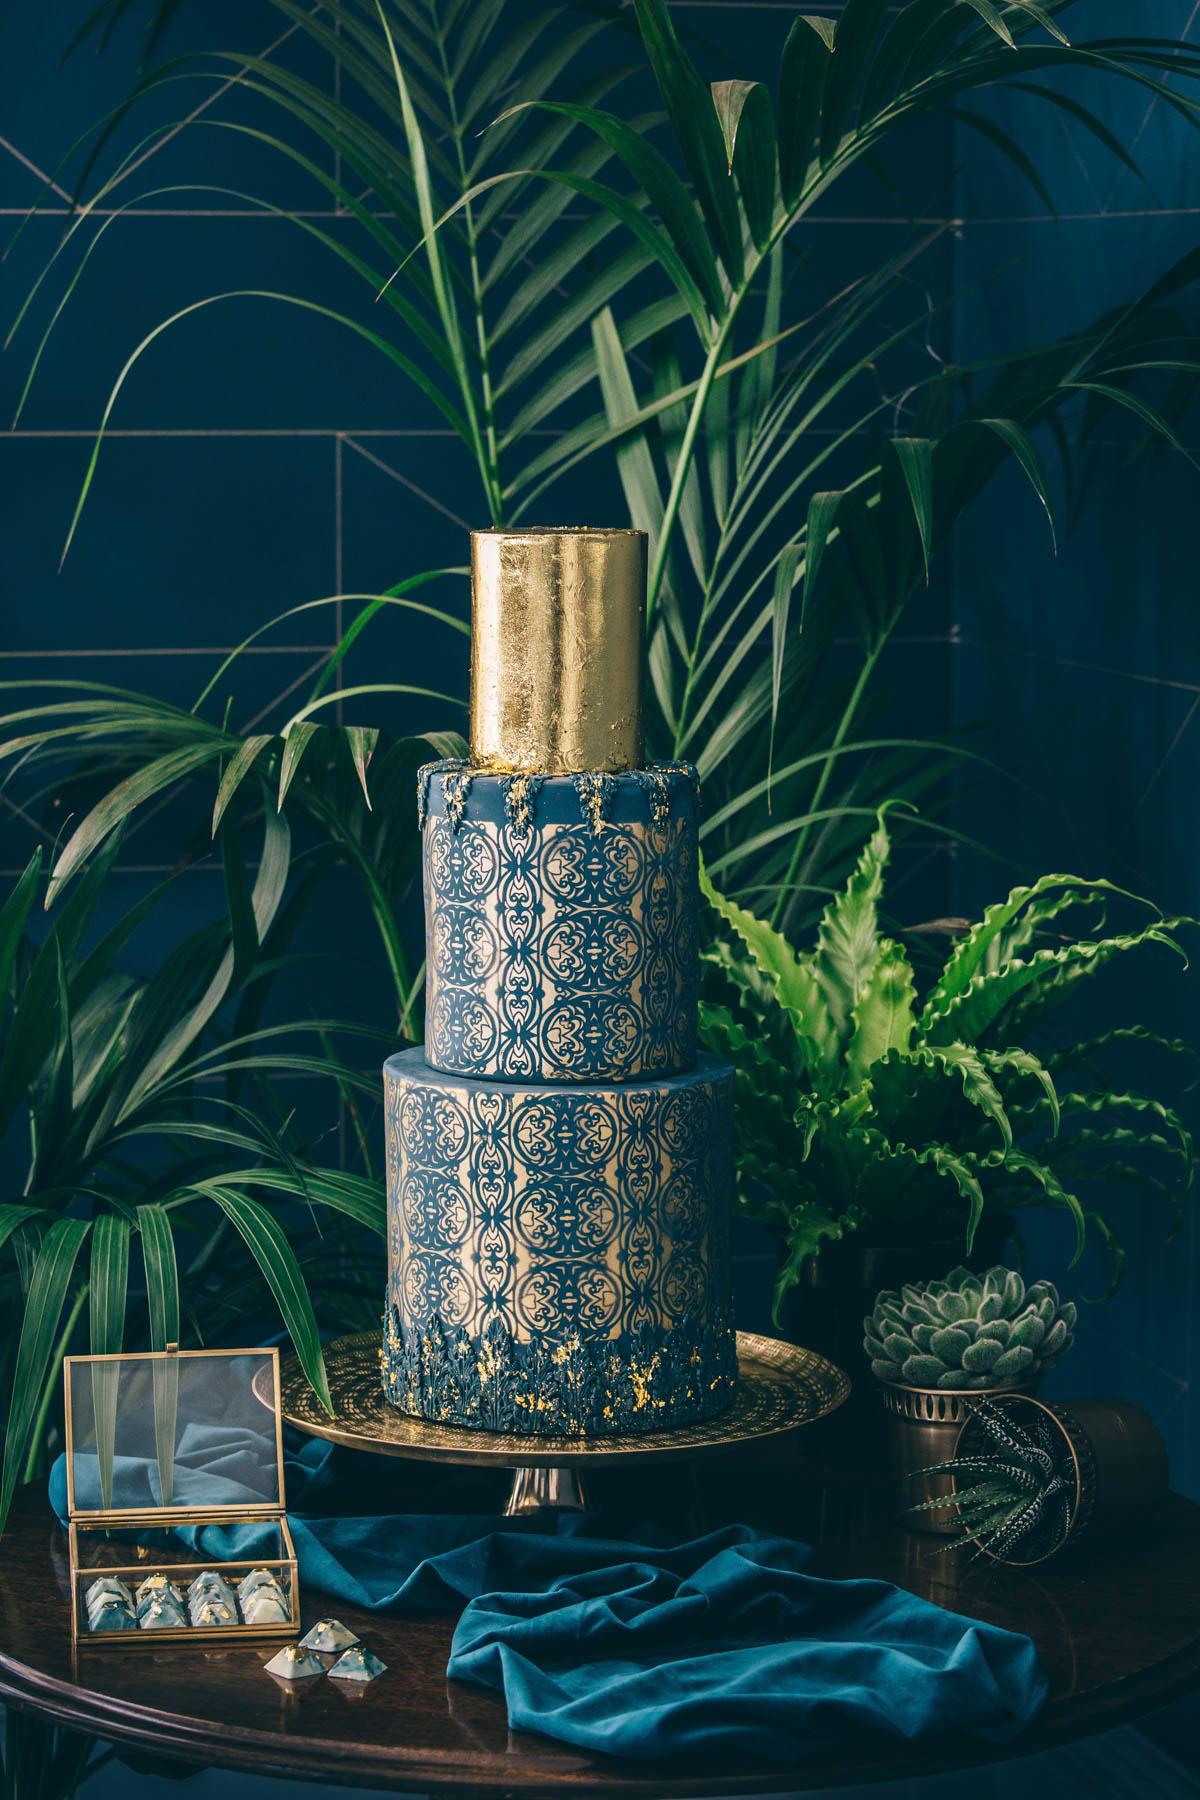 70's style, 2017, art deco, bold, bouquet, Bow, brass, bridal jumpsuit, bride, Brigitte Fisher, bronze, candles, Credition, deco, Devon Wedding Photographer, dress, Edible Essence Couture Cake Co, Emmy Shoes, ferns, foliage, Genevieve Satha Make-up, glamour, graphic, Inspire Hire, jumpsuit, jungle luxe, Knots & Kisses, Kye Tew Jewellery, leopard print, Maxi Photography, model, modern, name setting, Paschoe House, Paschoe House wedding photographer, peacock chair, place setting, Rock The Frock, Sarah-Jane Mackfall, stationery, styled shoot, styling, succulents, table plan, teal, uber-glam, virginias vintage hire, wedding dress, wedding jumpsuit, Winsor Flower Studio